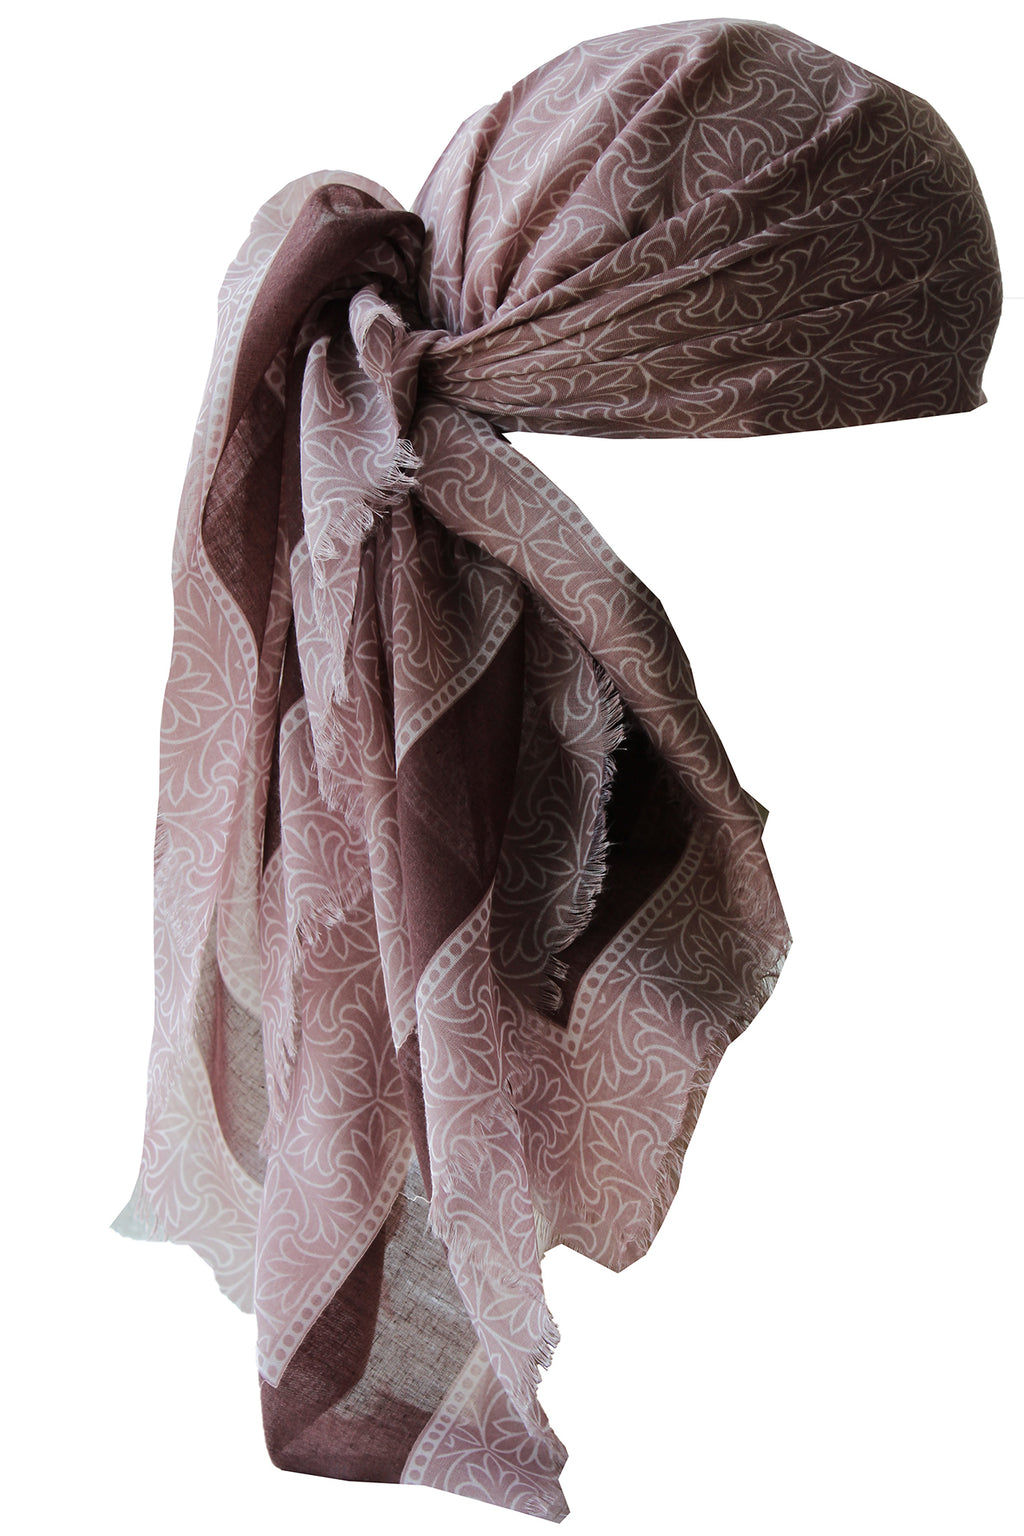 Special Fringed Trim Square Headscarf- Pinky Mink